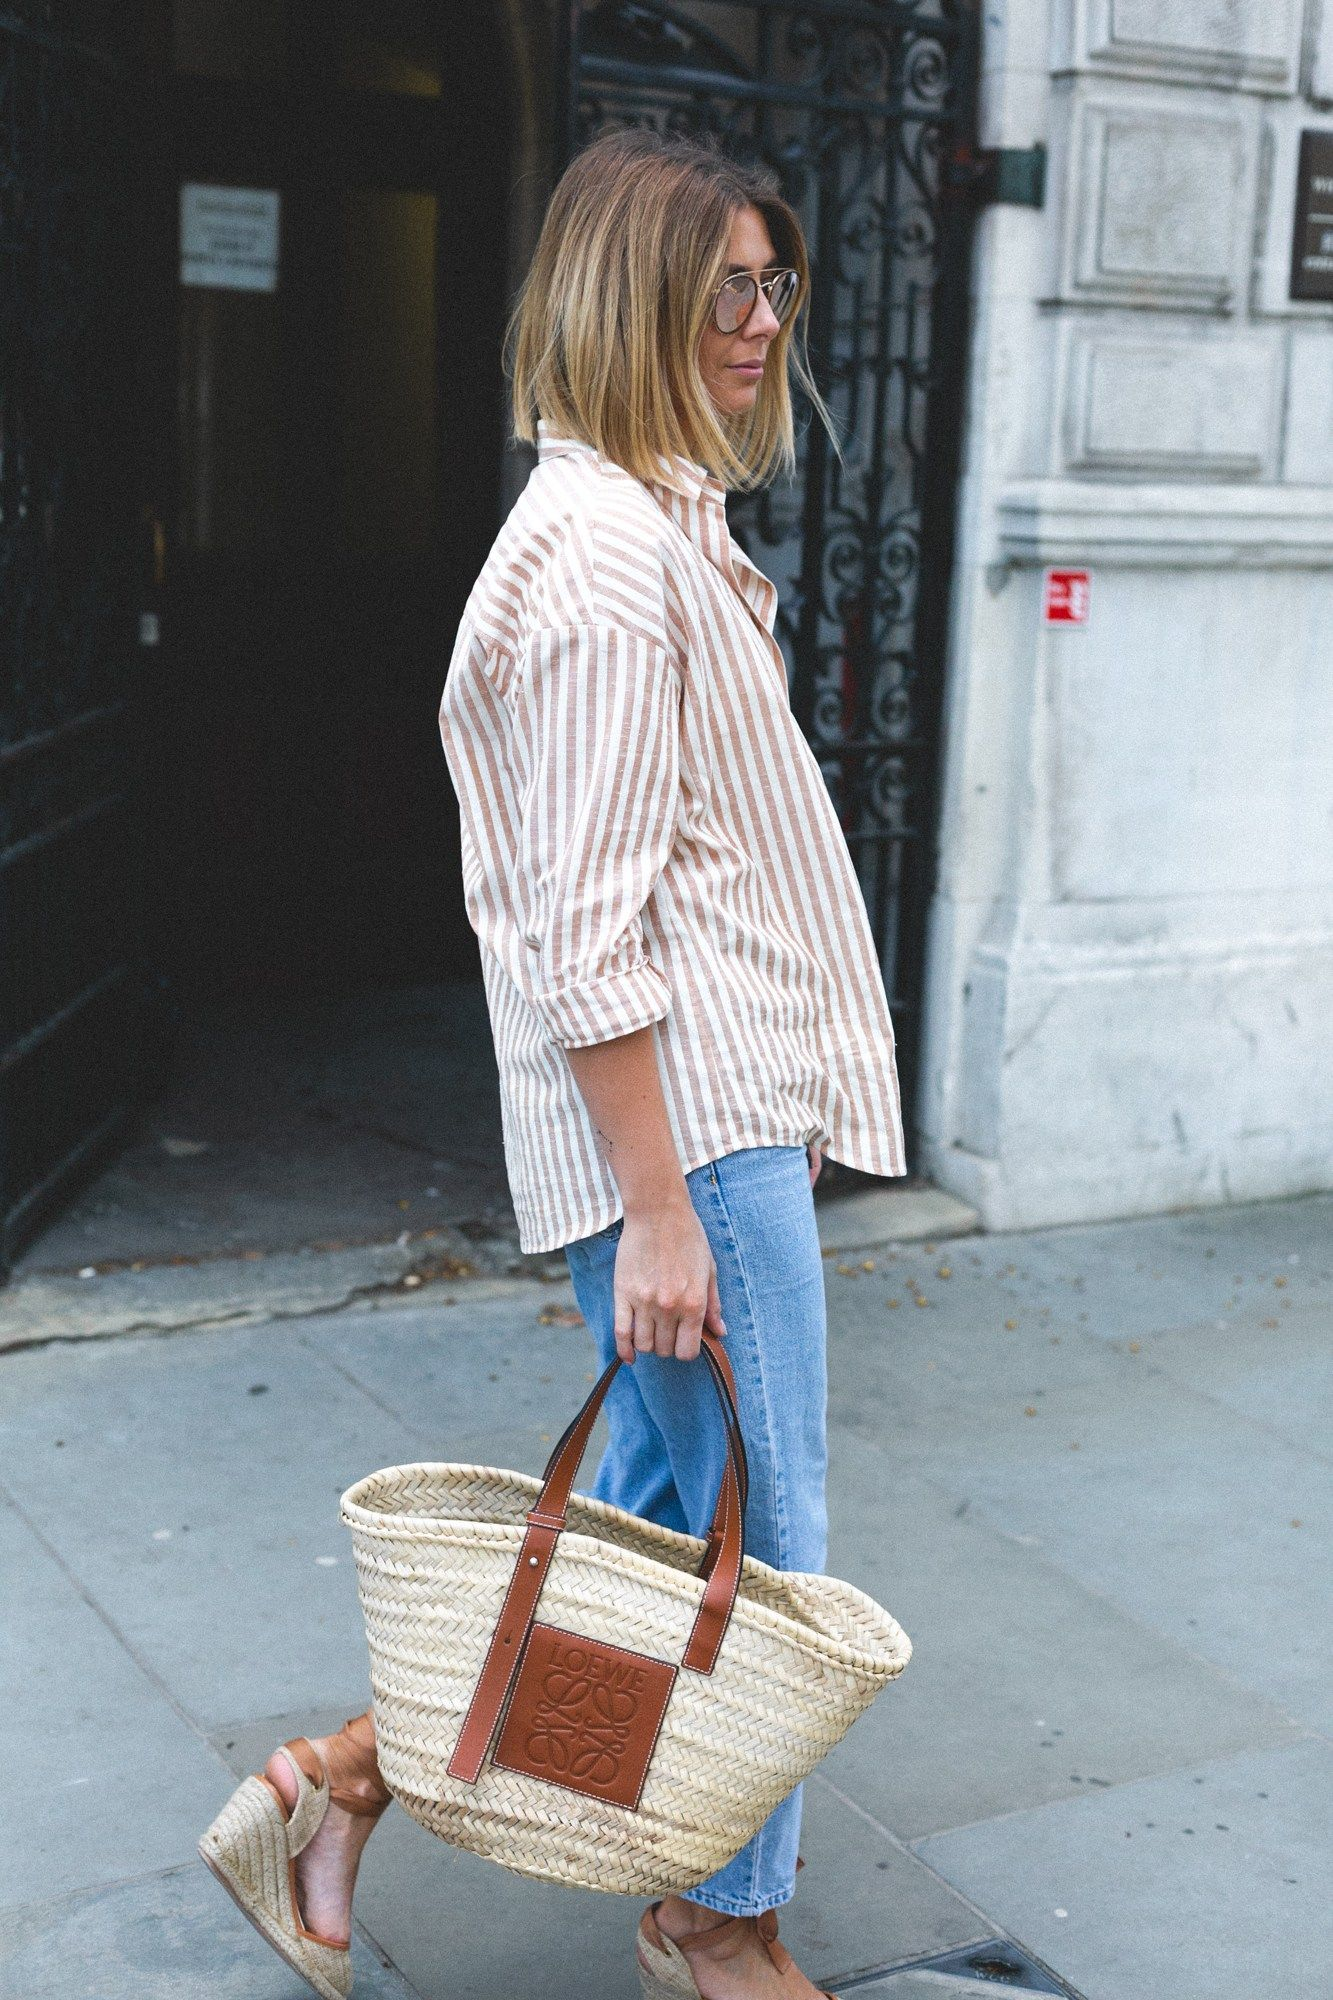 d1937046e9b Emma Hill wears stripe shirt, loewe basket bag, light wash jeans, wedge  espadrilles. spring outfit, casual outfit